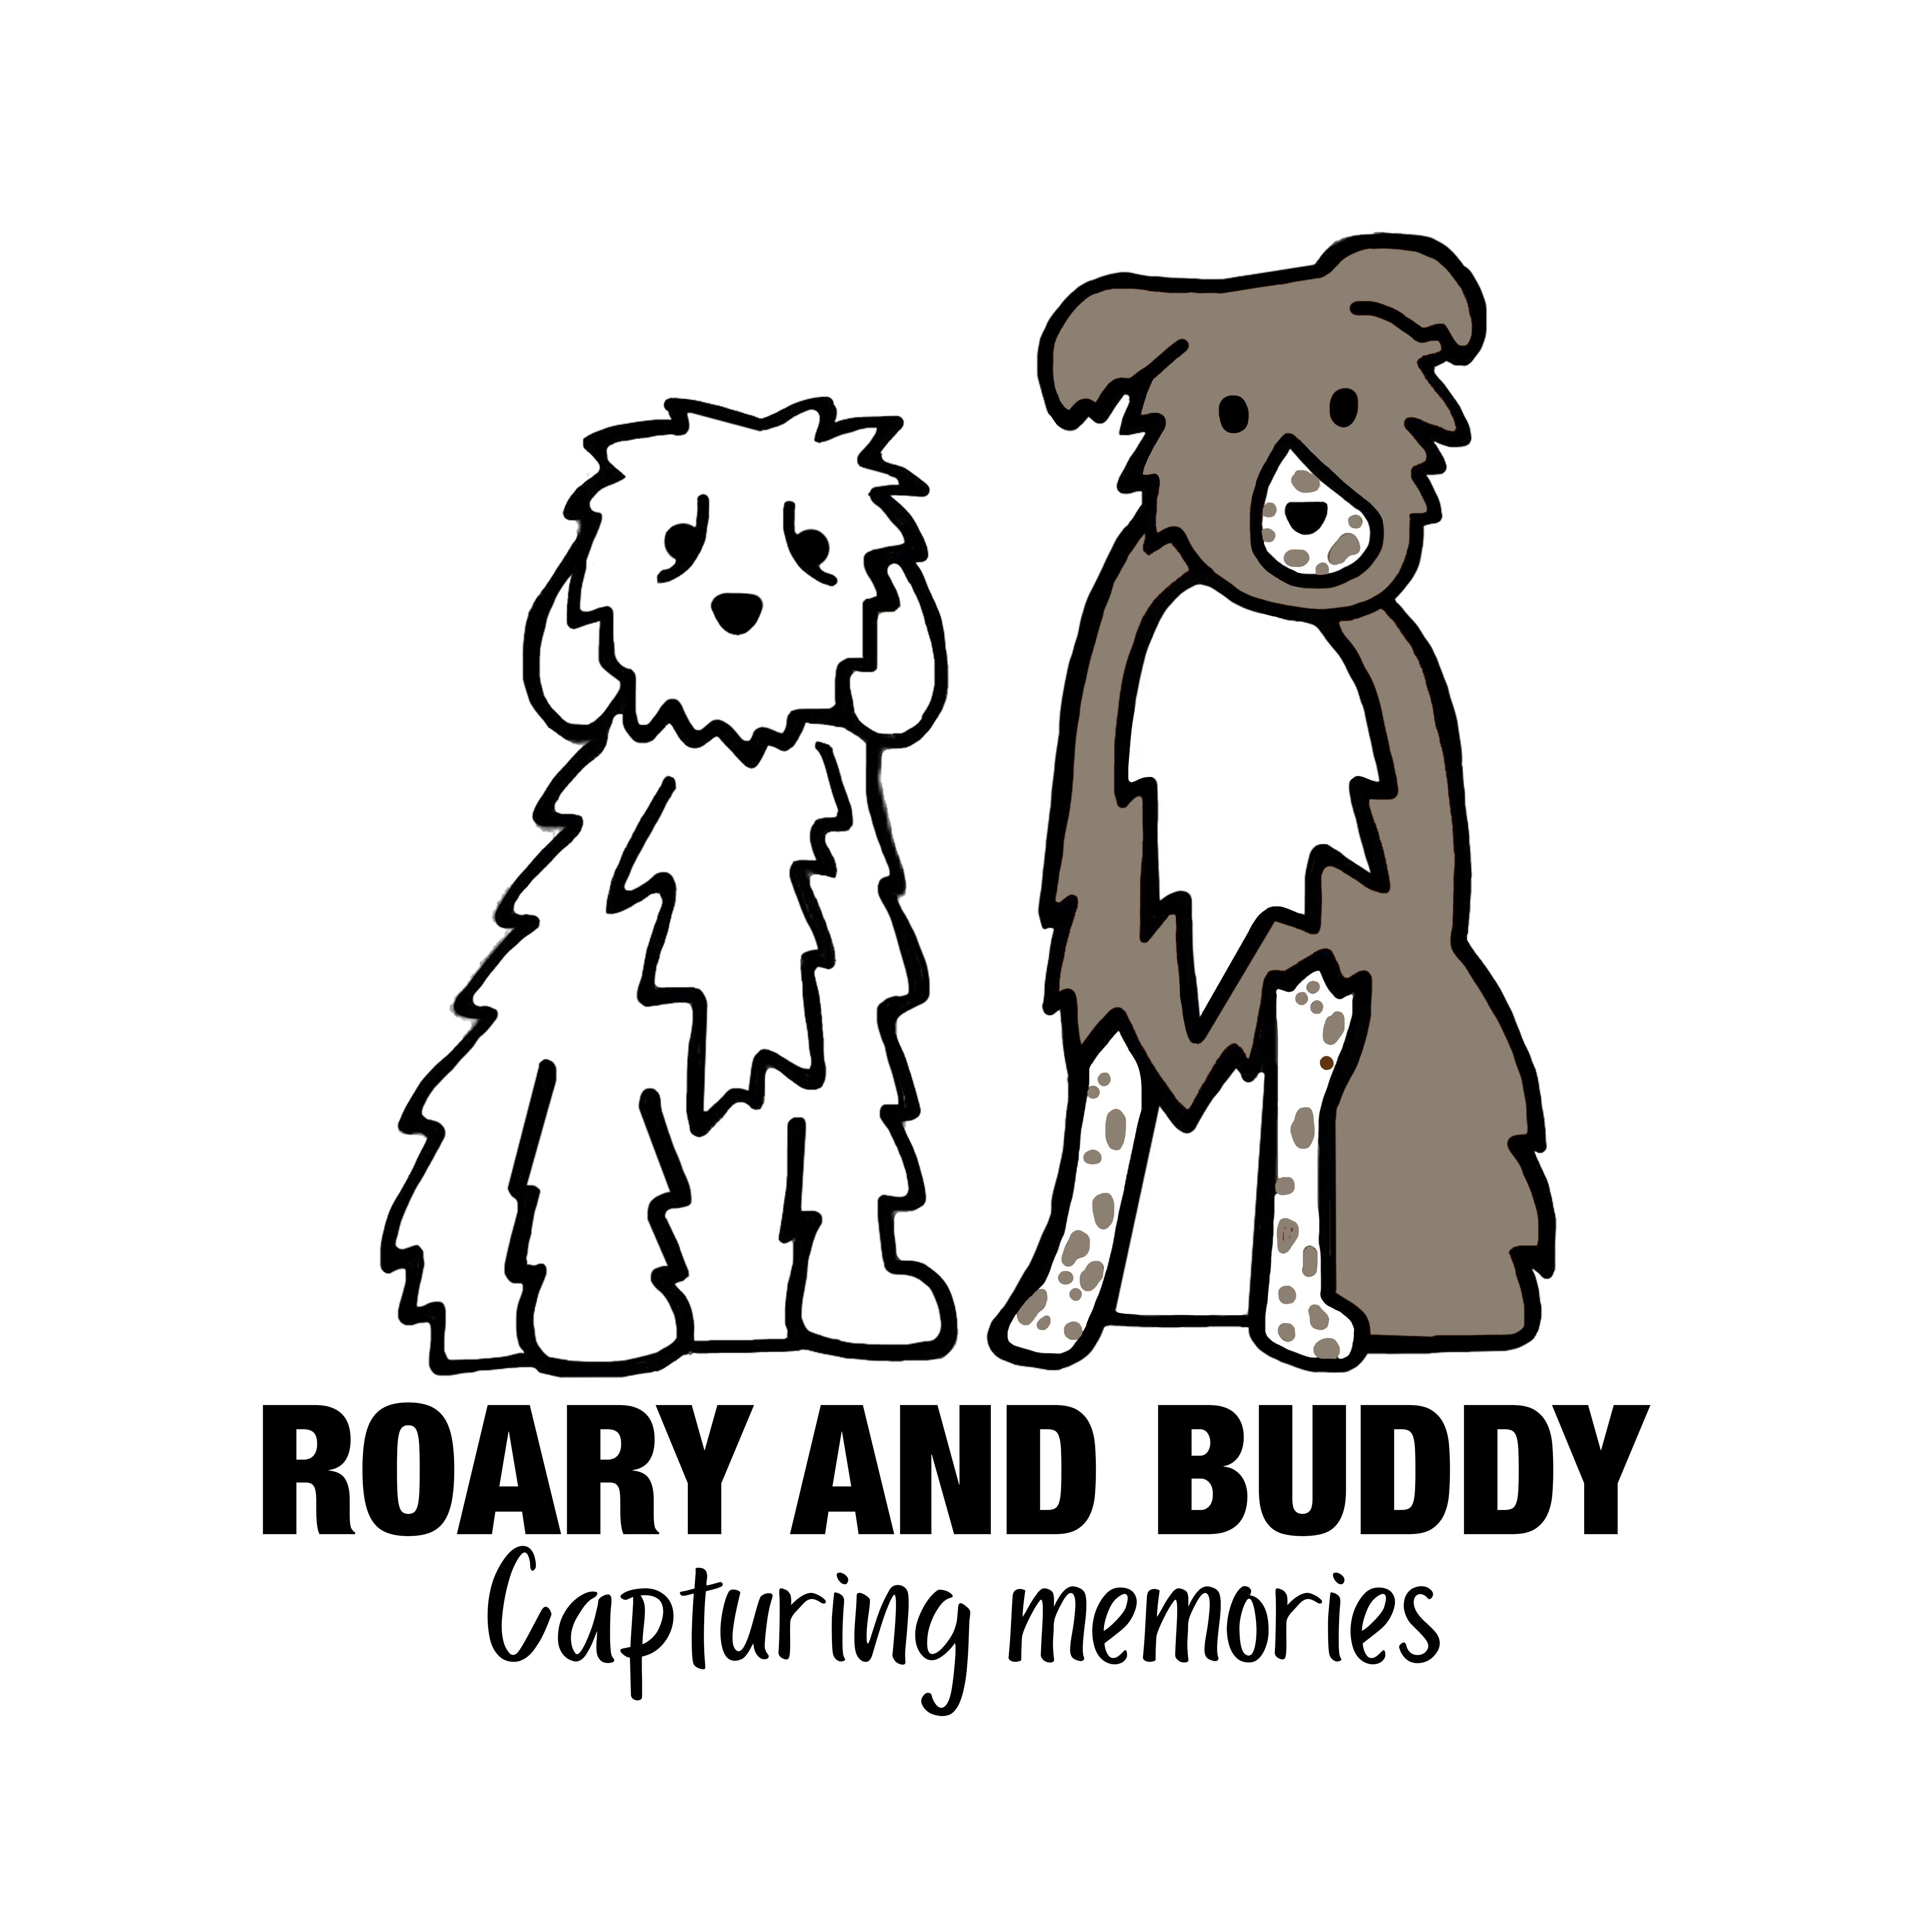 Roary and Buddy